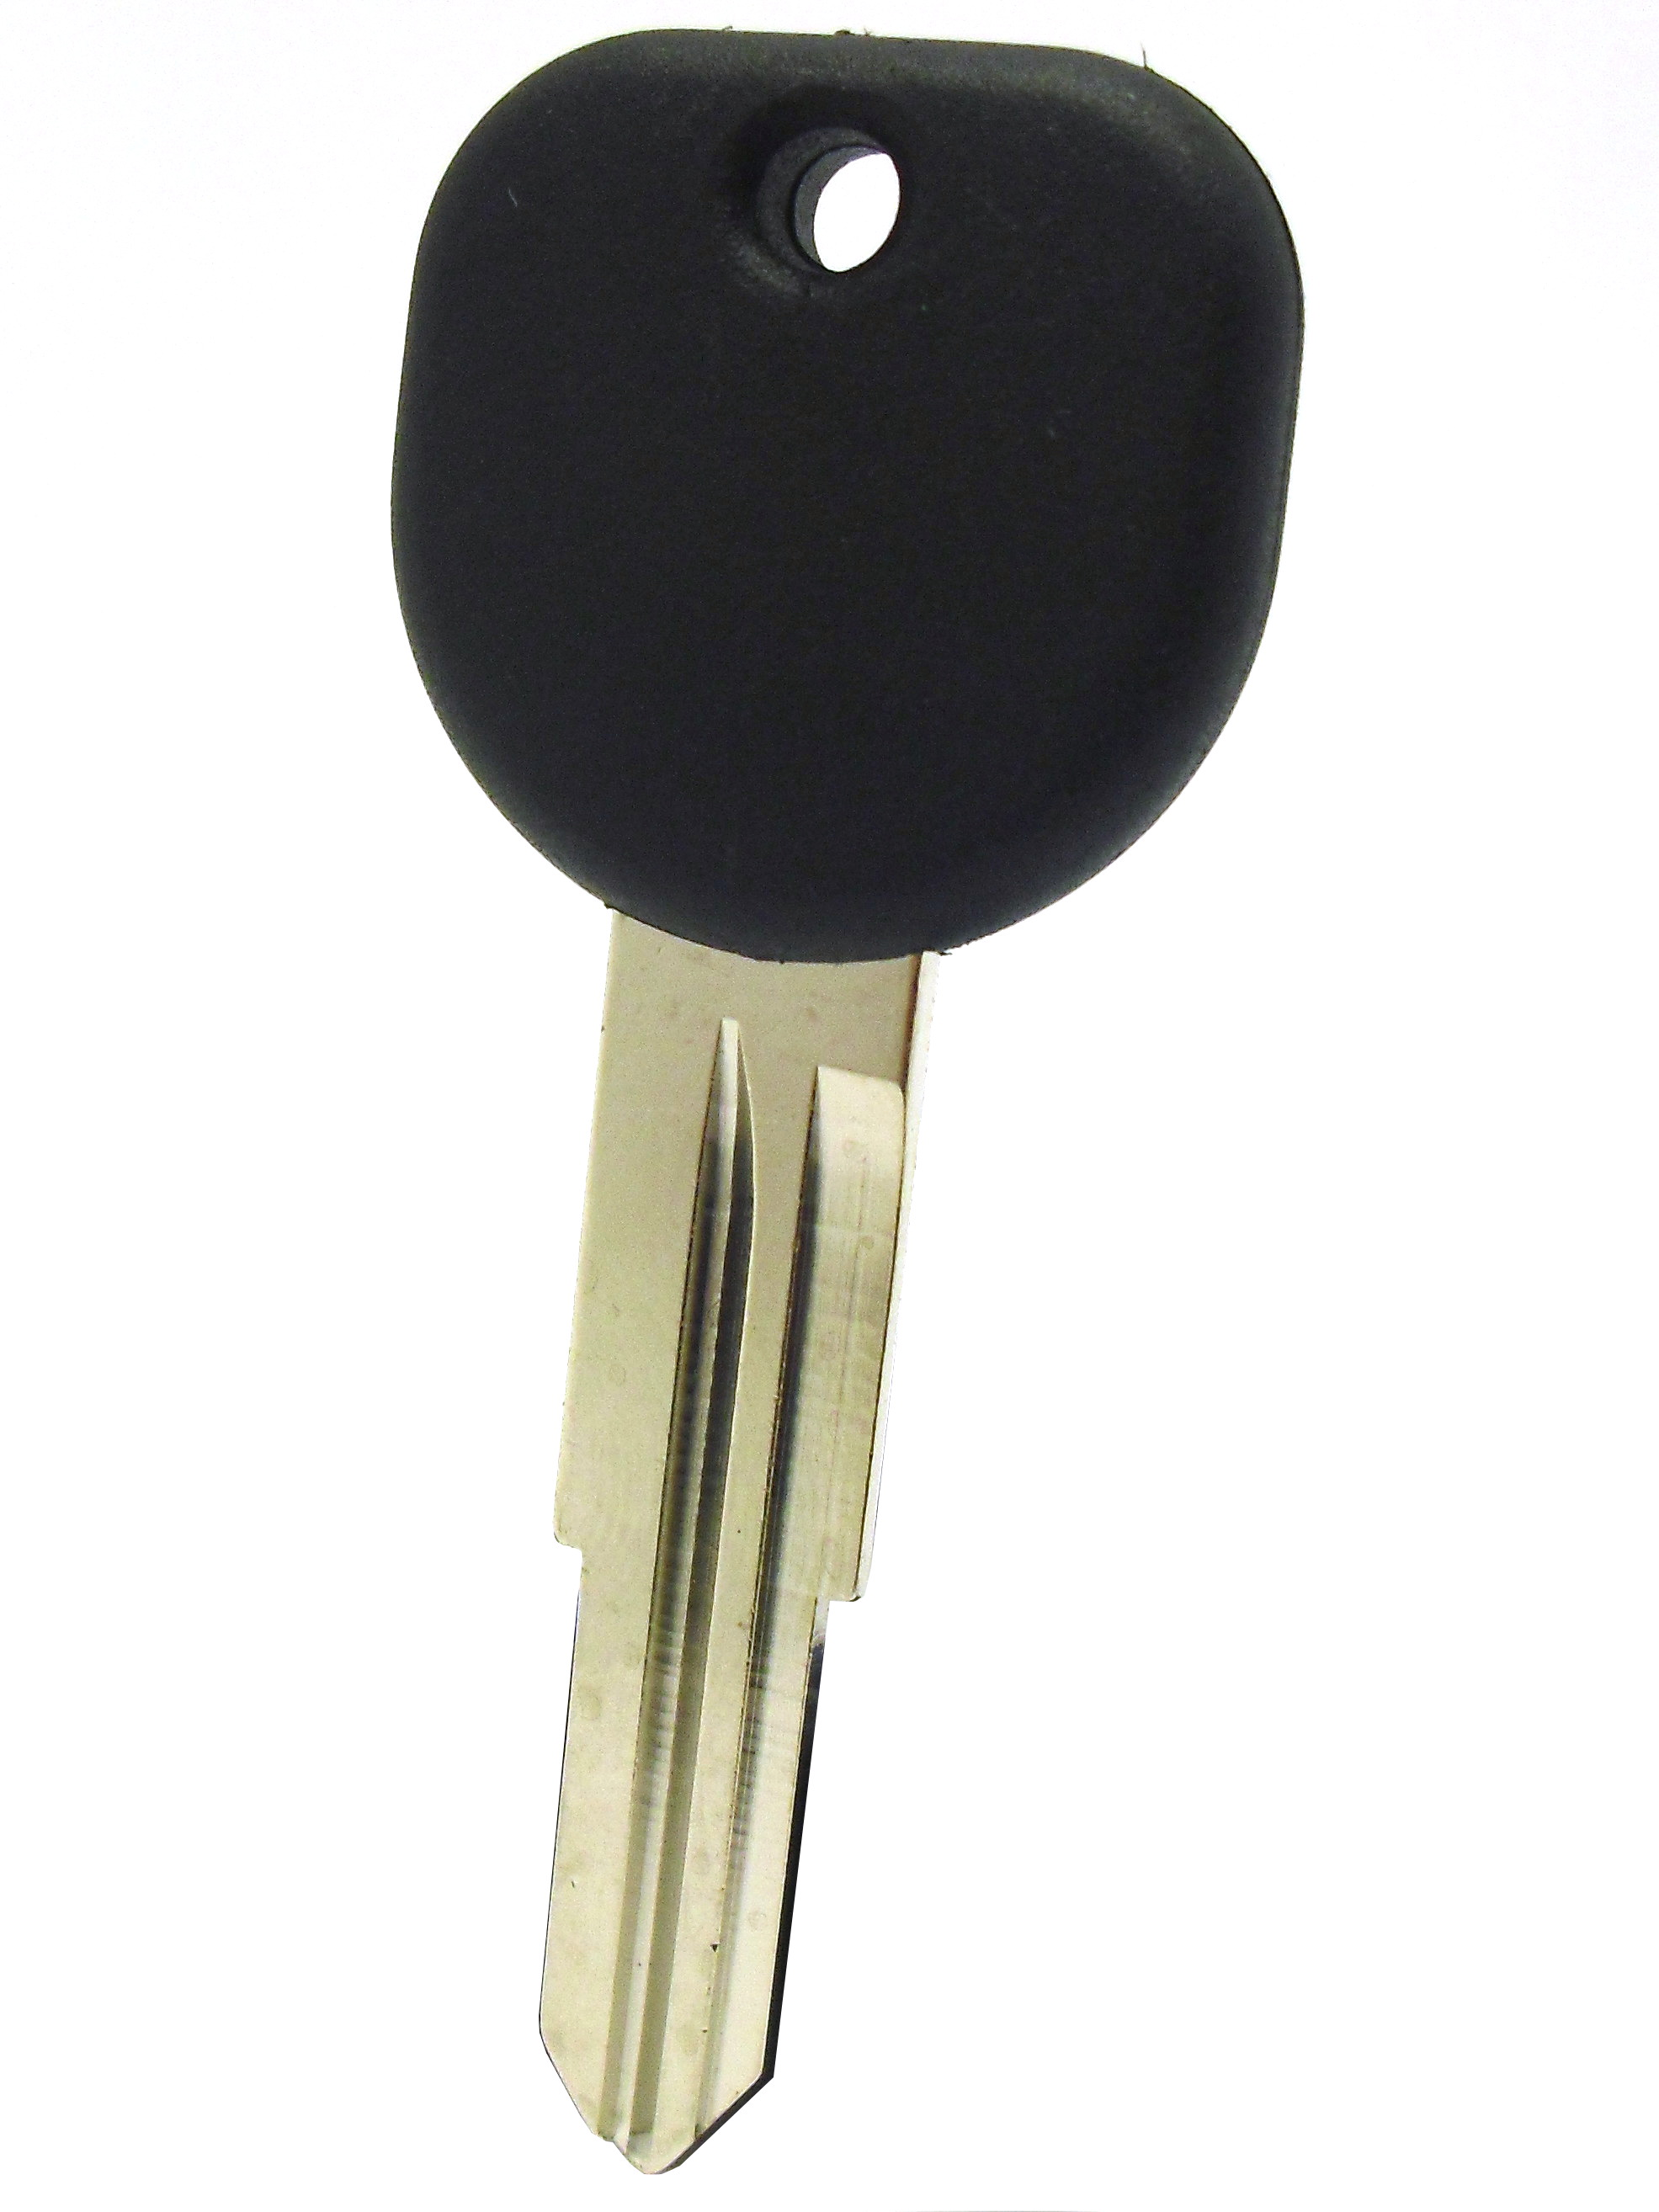 Chevrolet/Saturn Transponder Key - New/Uncut